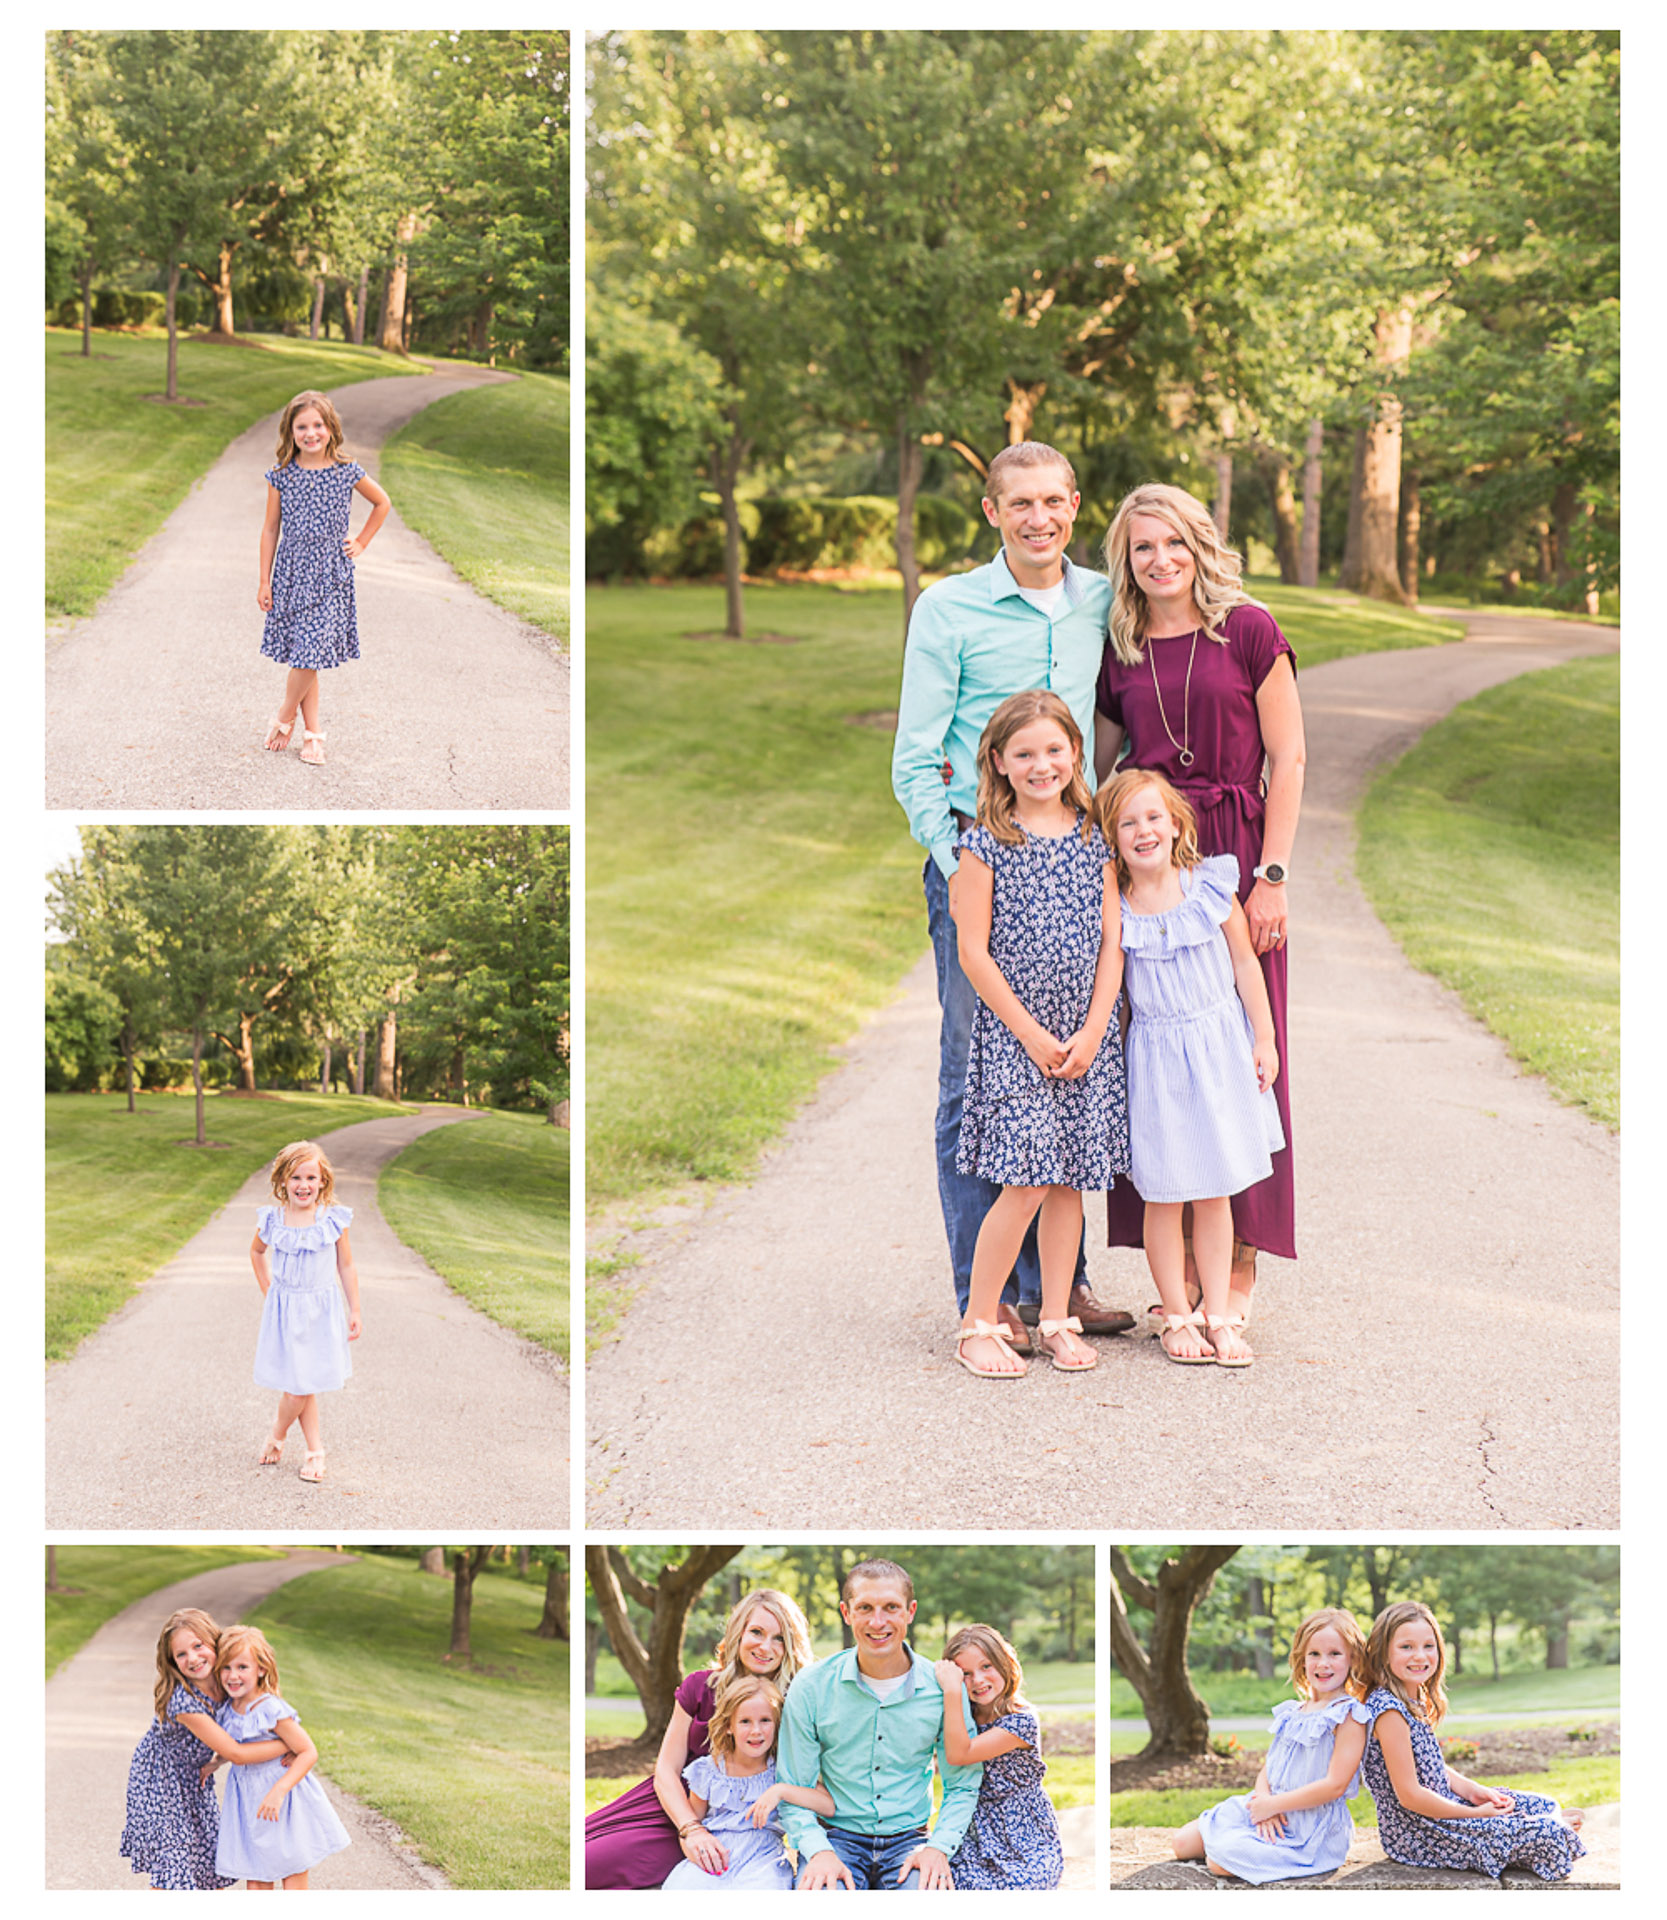 Family-Photography-Des-Moines-Greenwood-Park